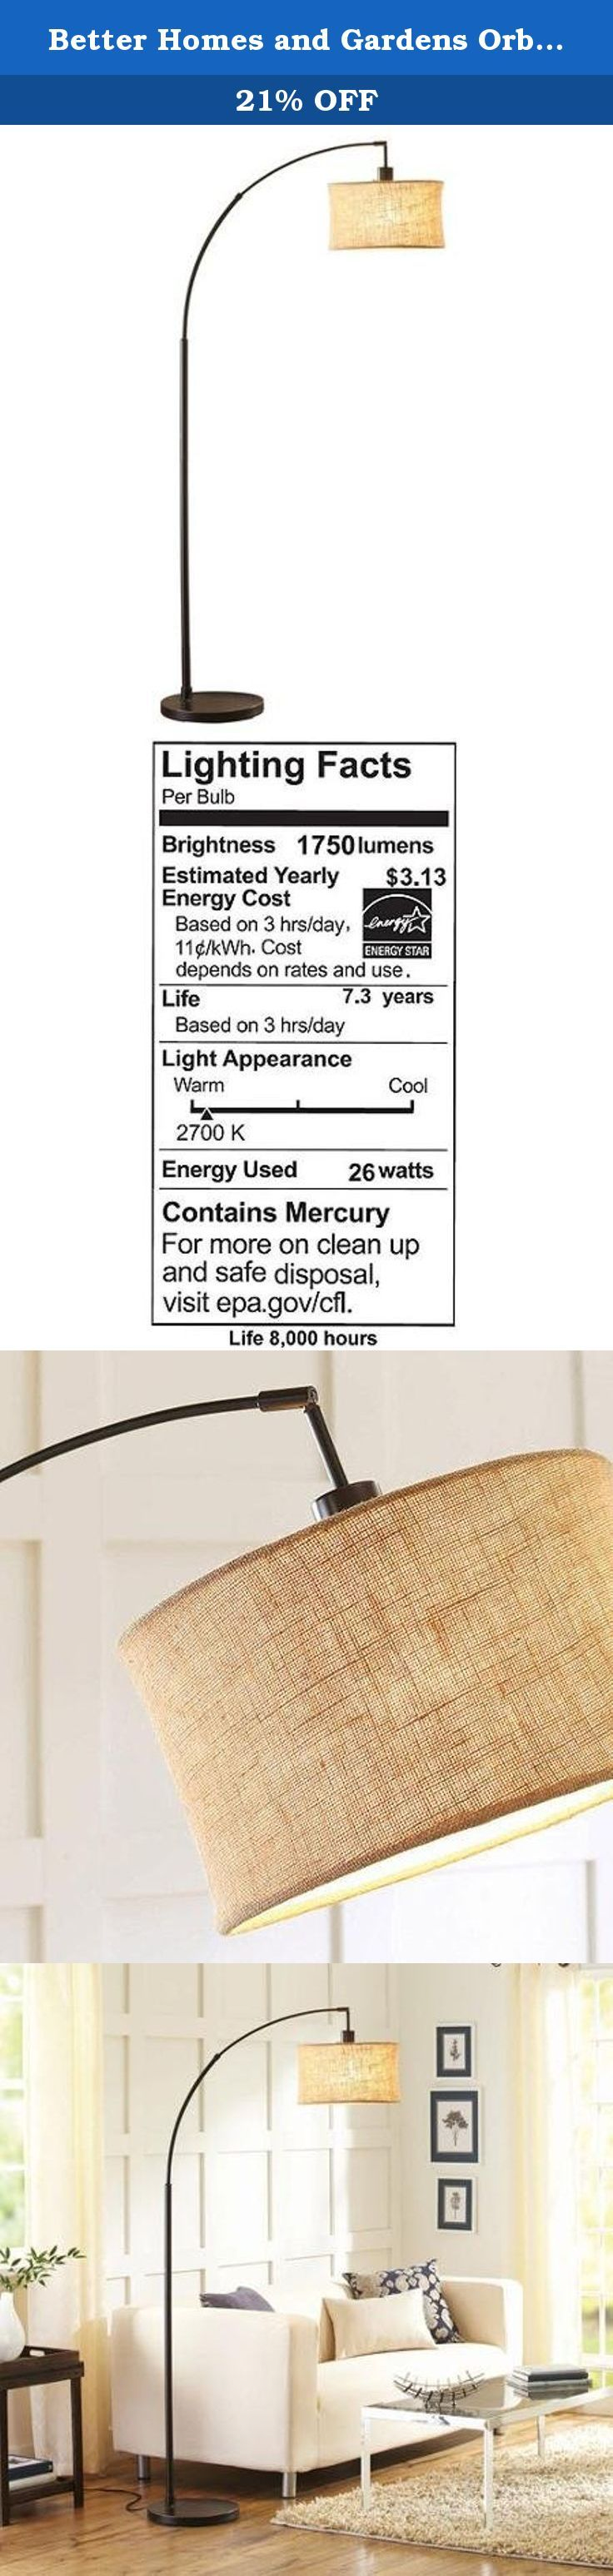 """Better Homes and Gardens Orb Burlap Arc Floor Lamp. Better Homes and Gardens Orb Burlap Arc Floor Lamp: UL listed Assembly required 12.5""""W (31.75 cm) base with 14""""D (35.56 cm) lamp shade."""